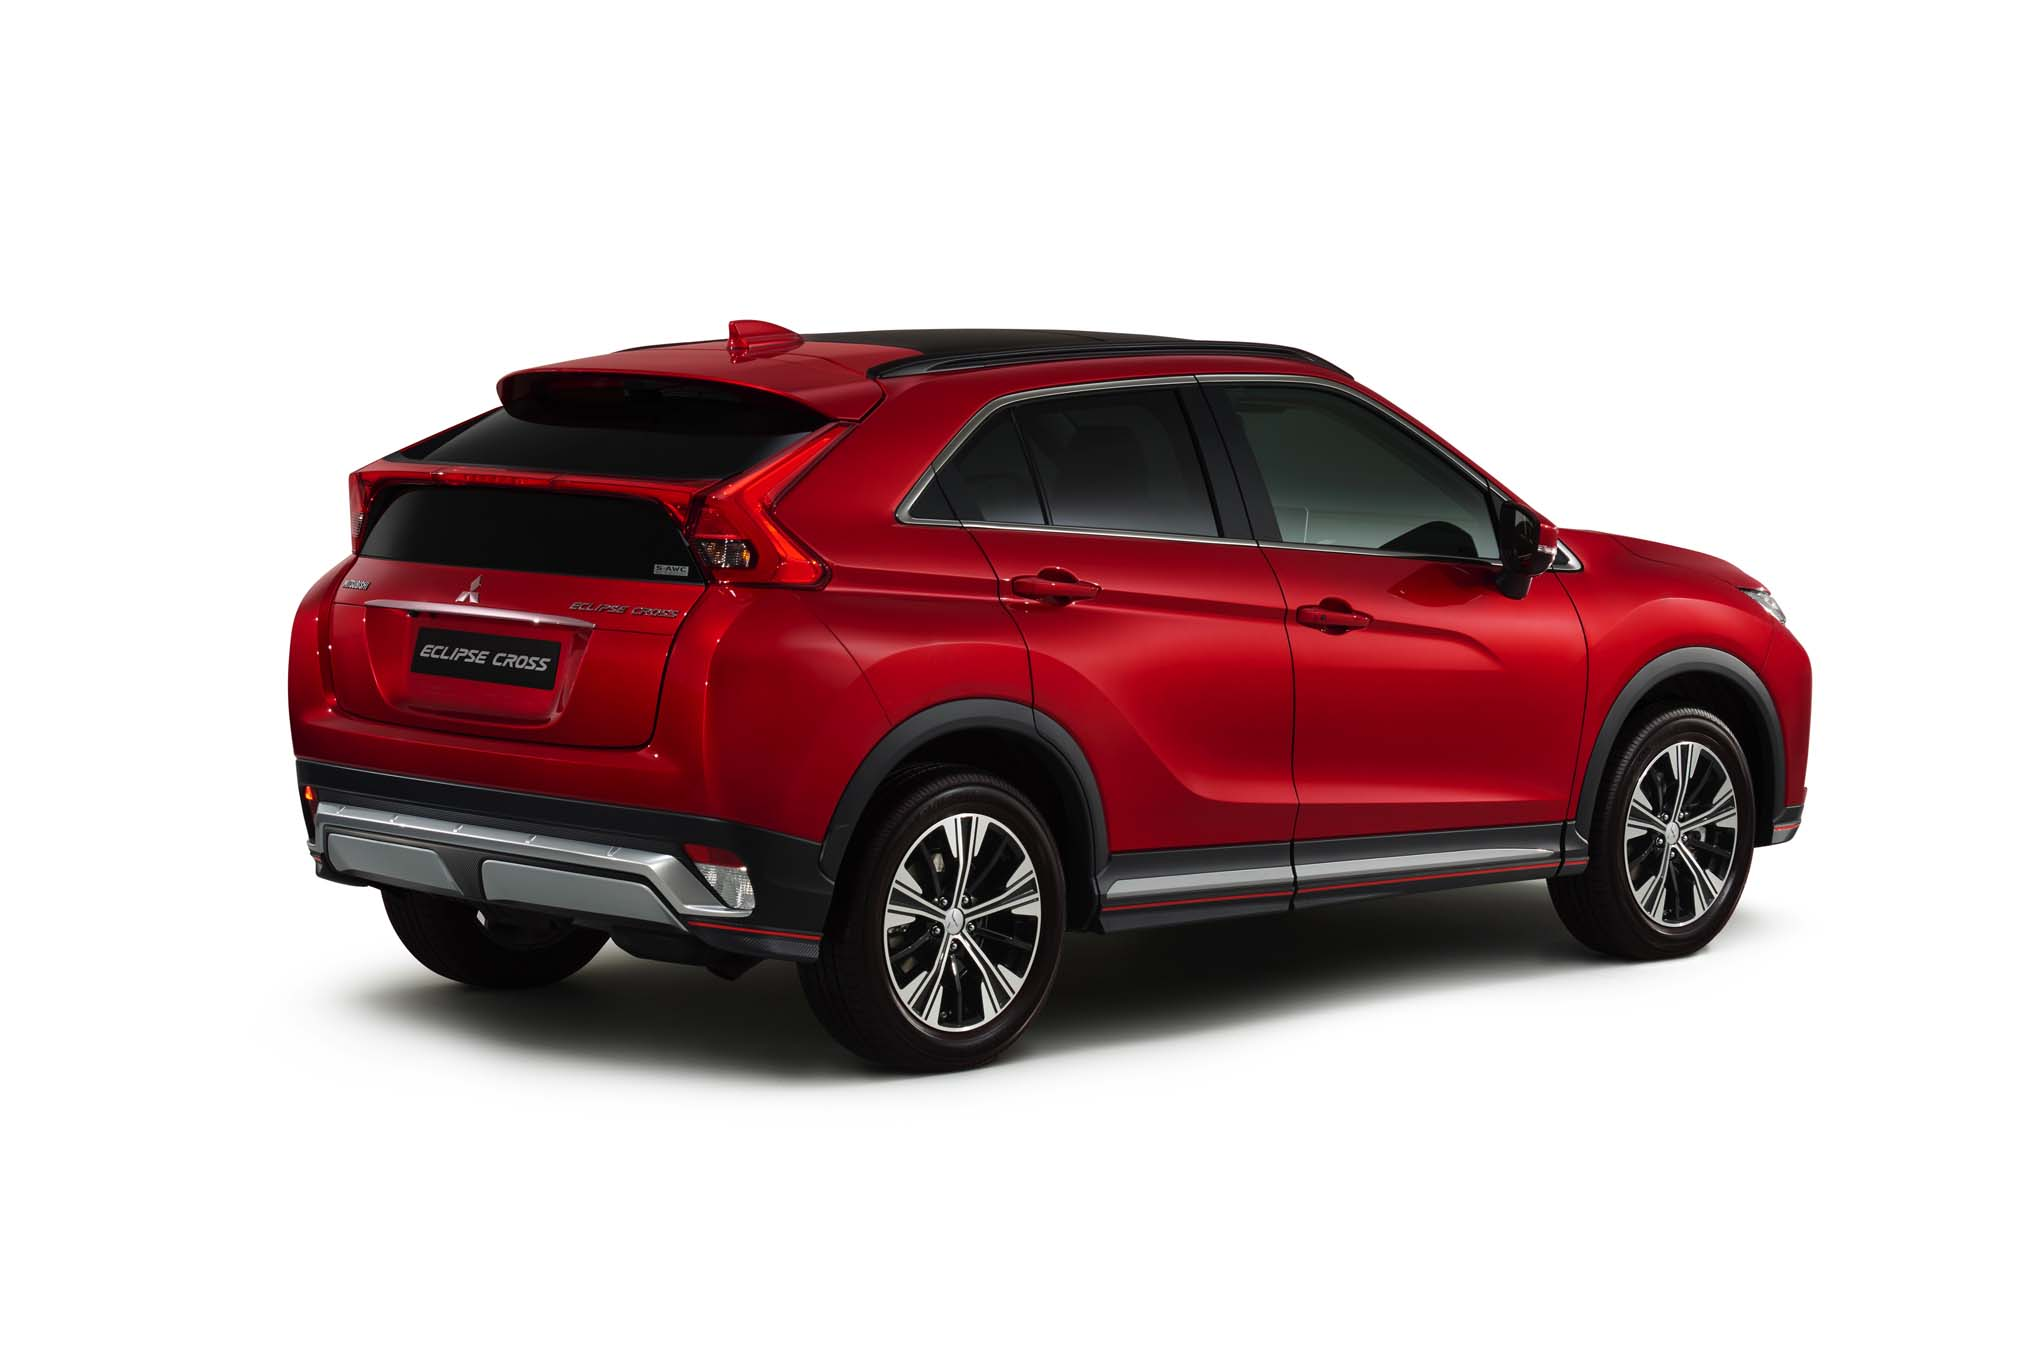 2018-Mitsubishi-Eclipse-Cross-rear-three-quarter-02